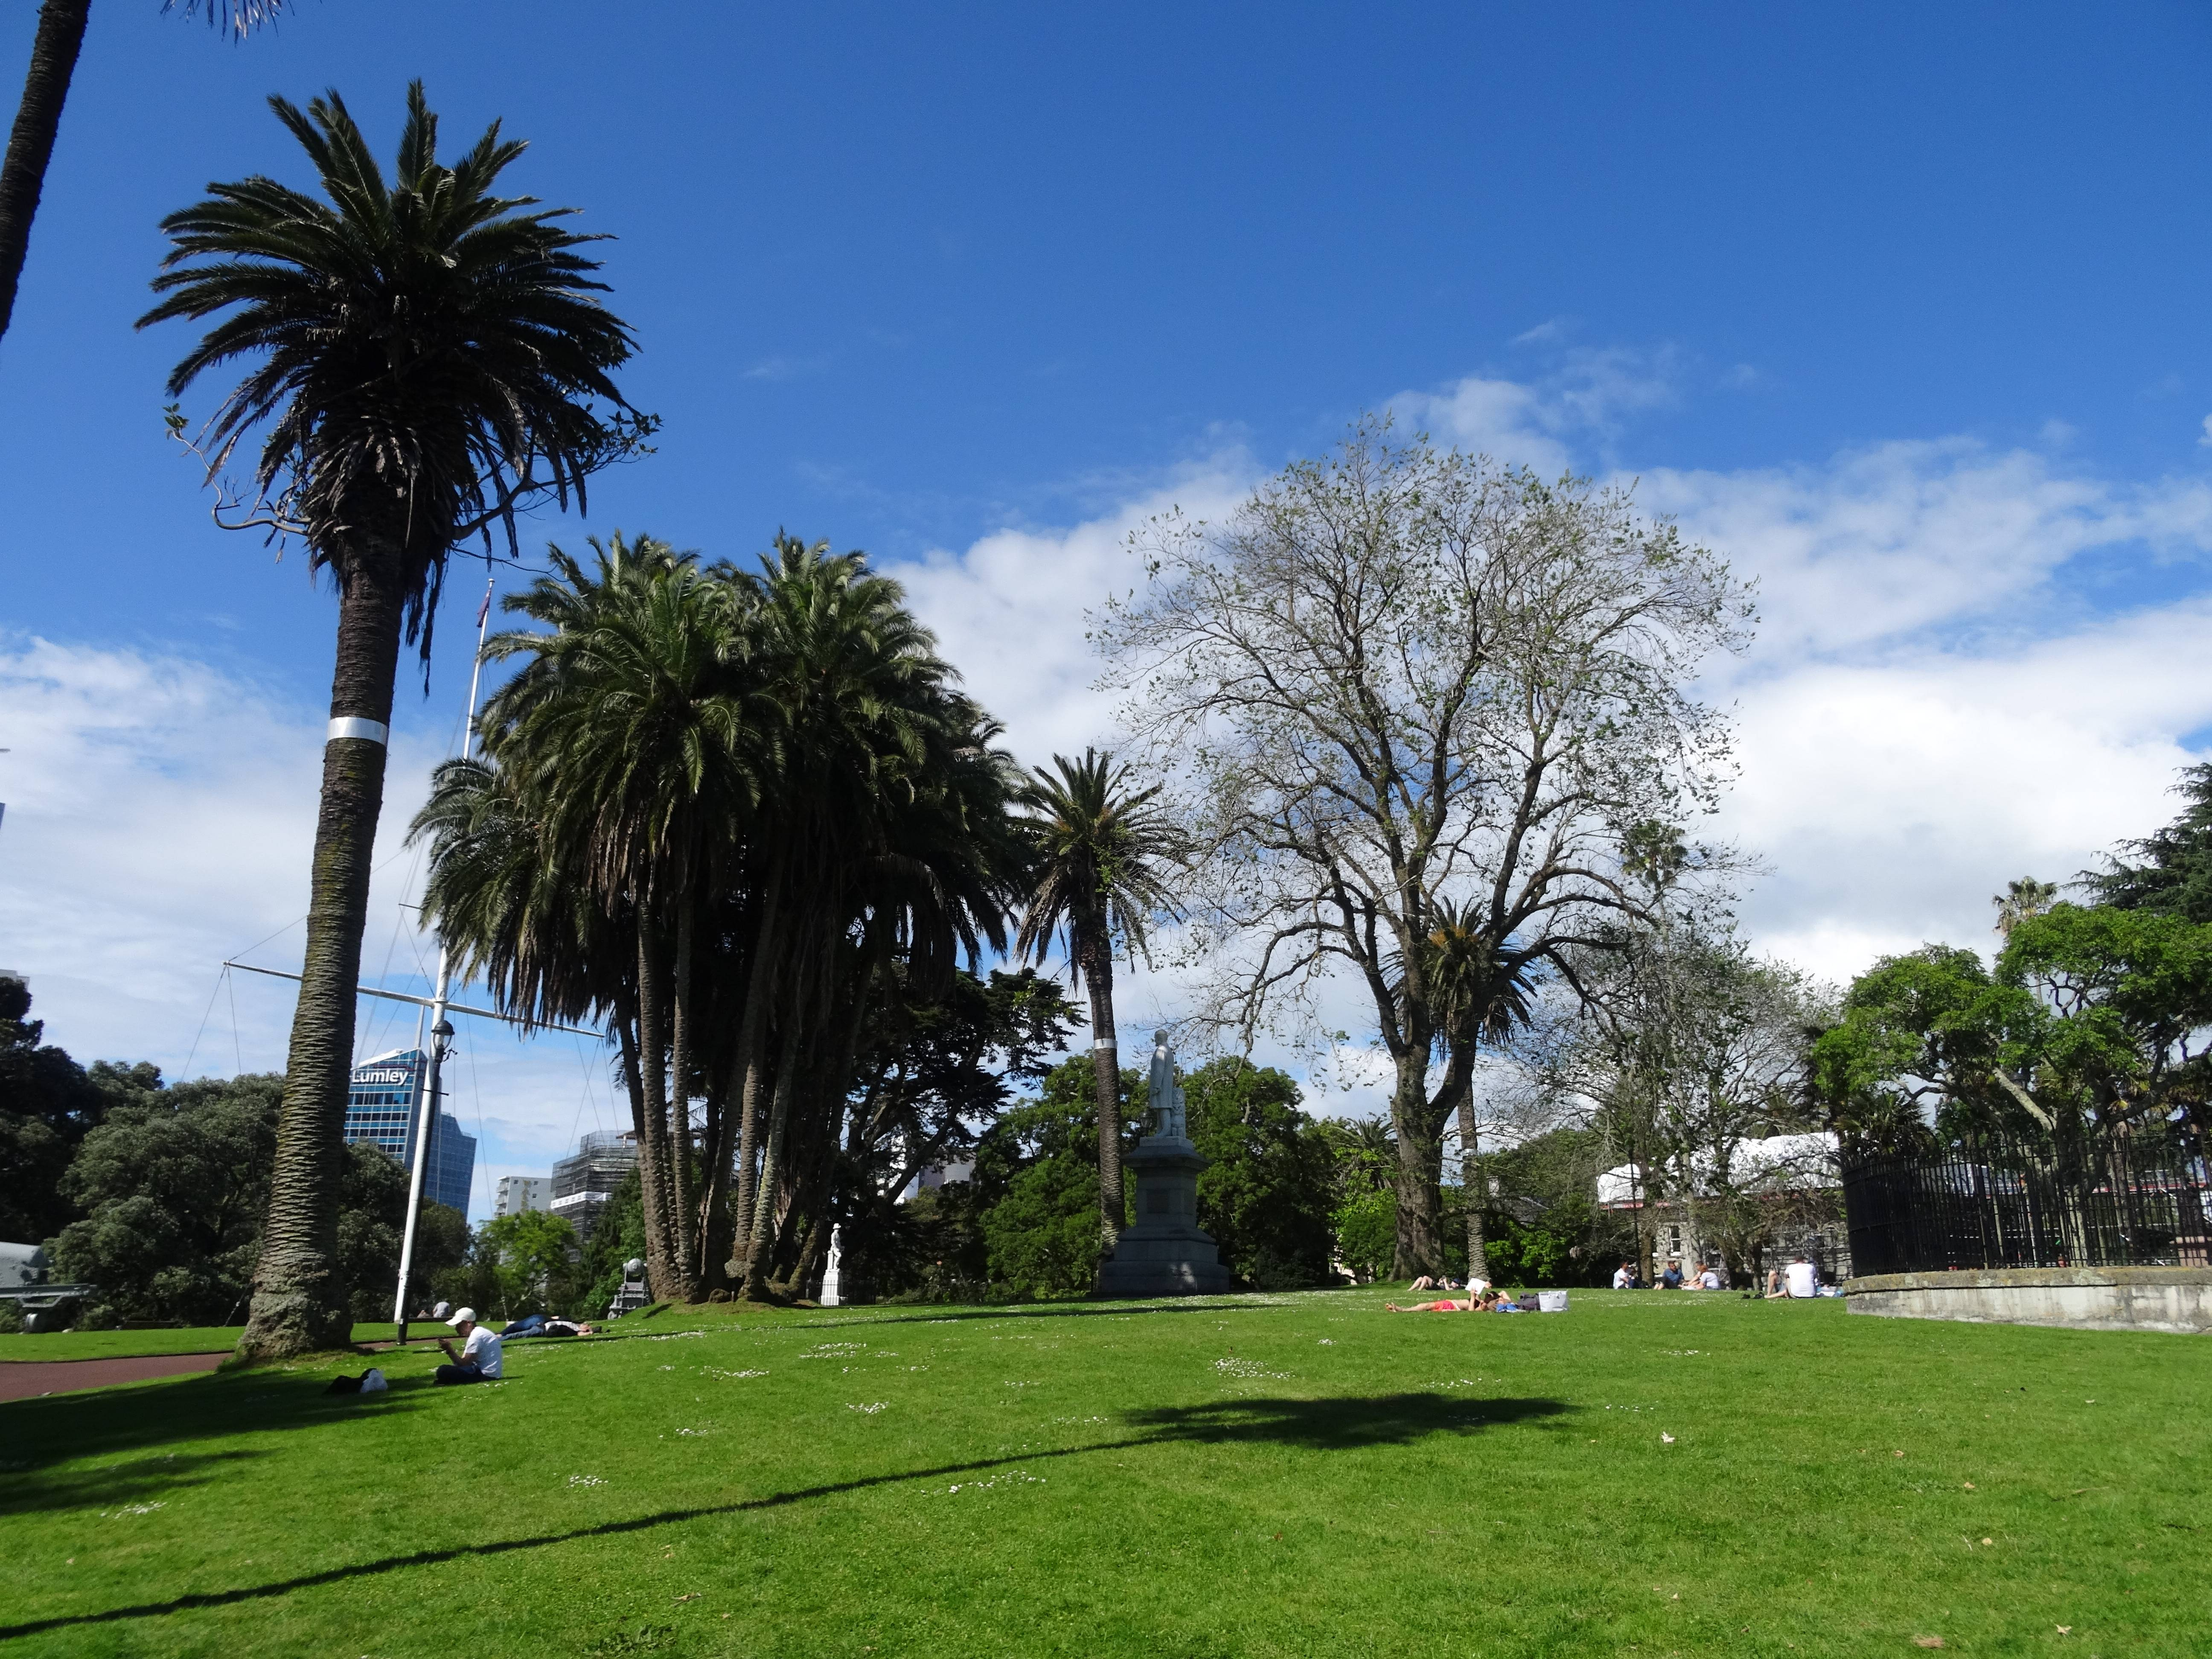 Photo 1: Albert Park, Auckland, Nouvelle-Zélande